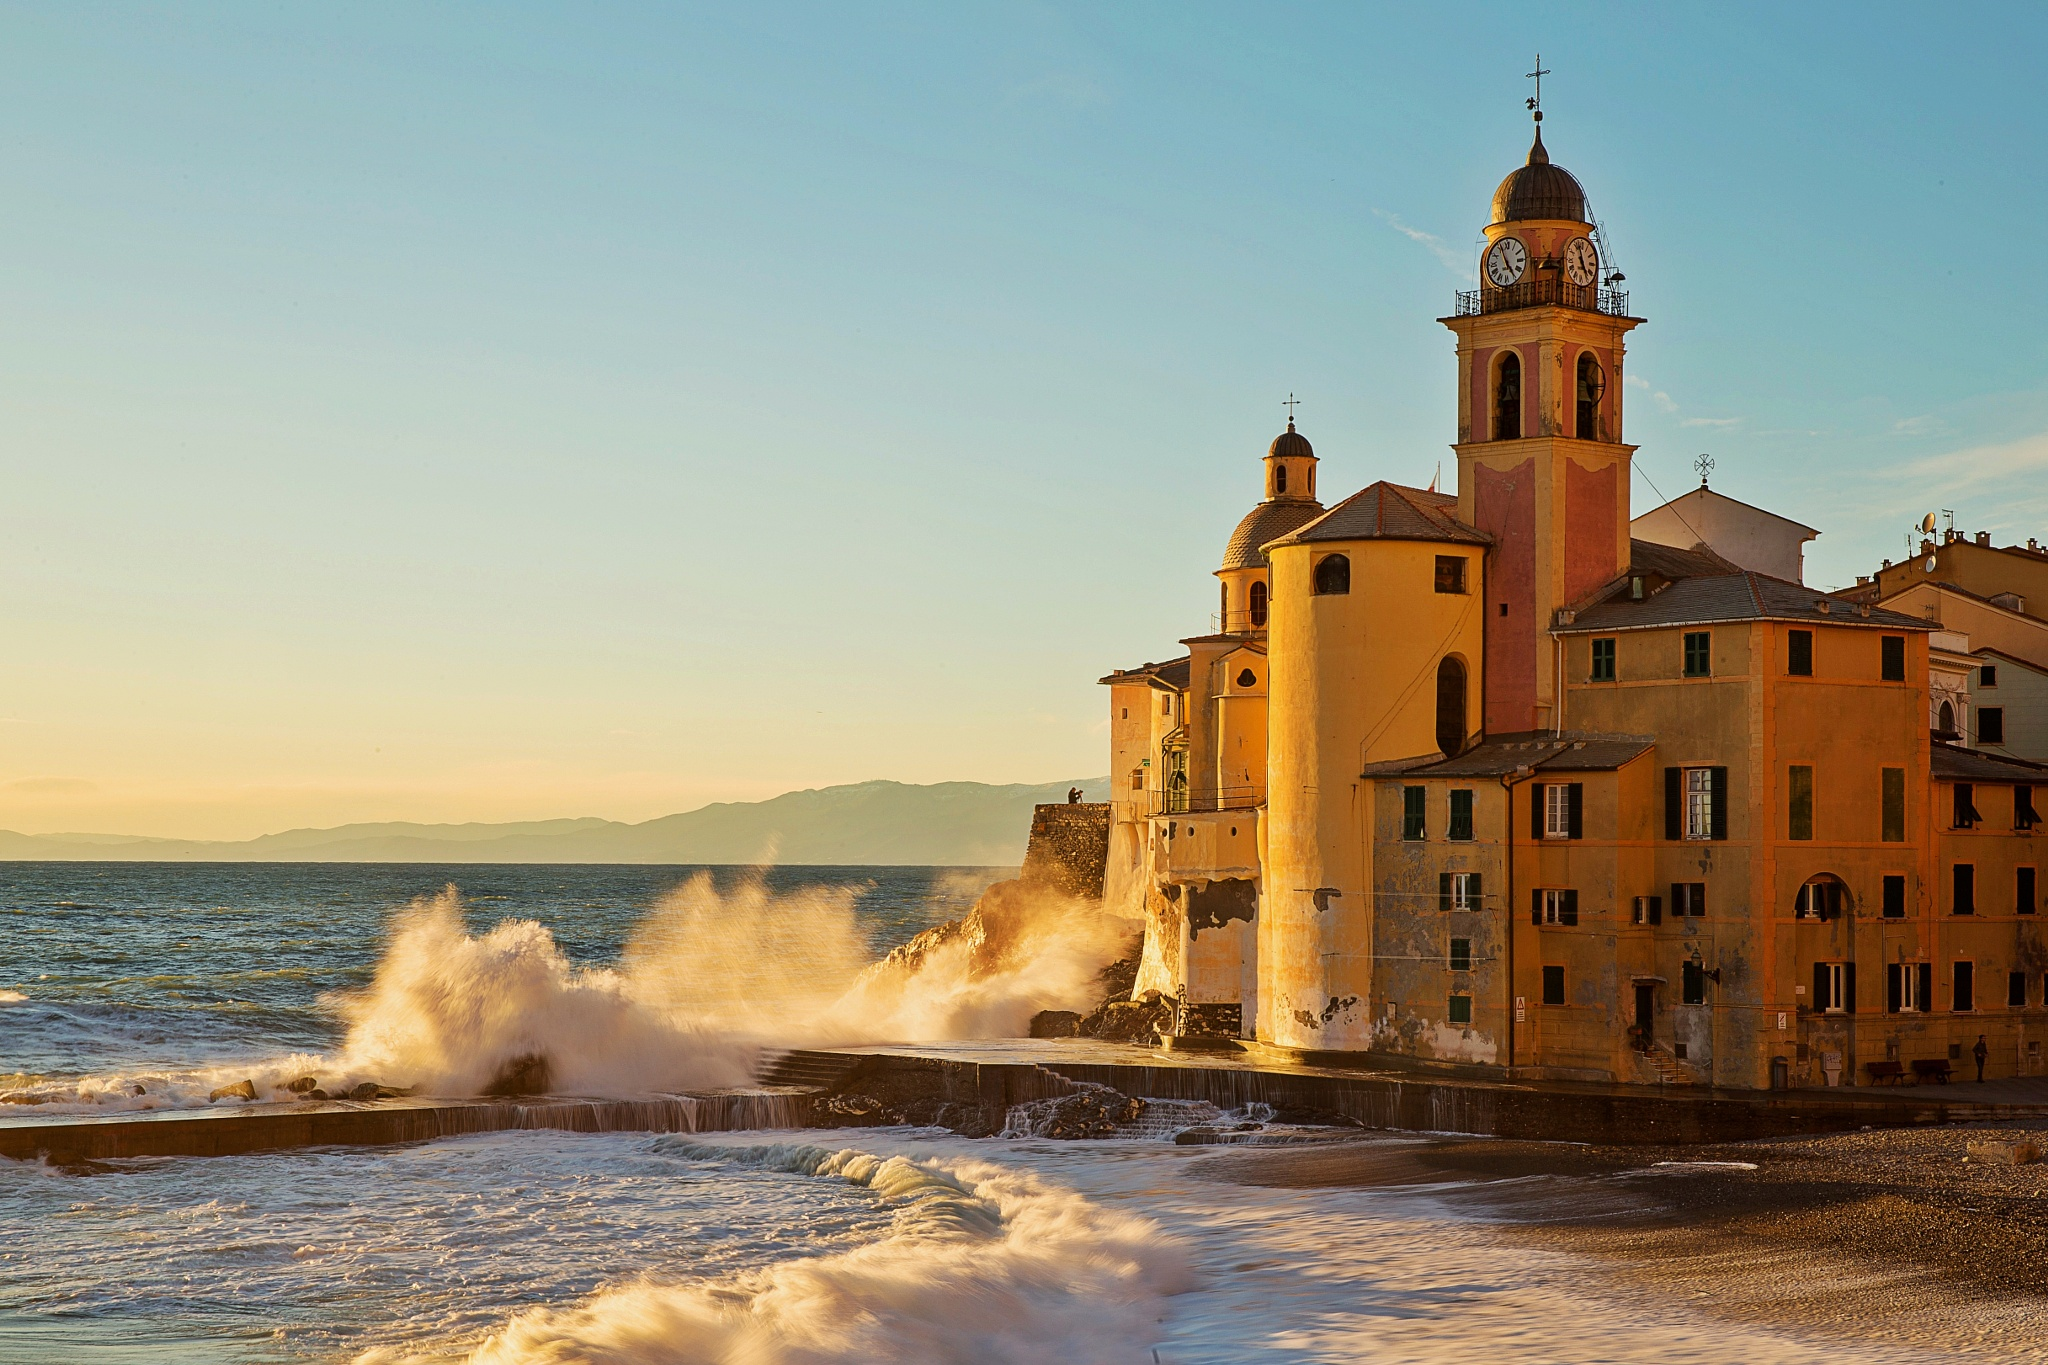 The power of the Sea by Carlo Allievi